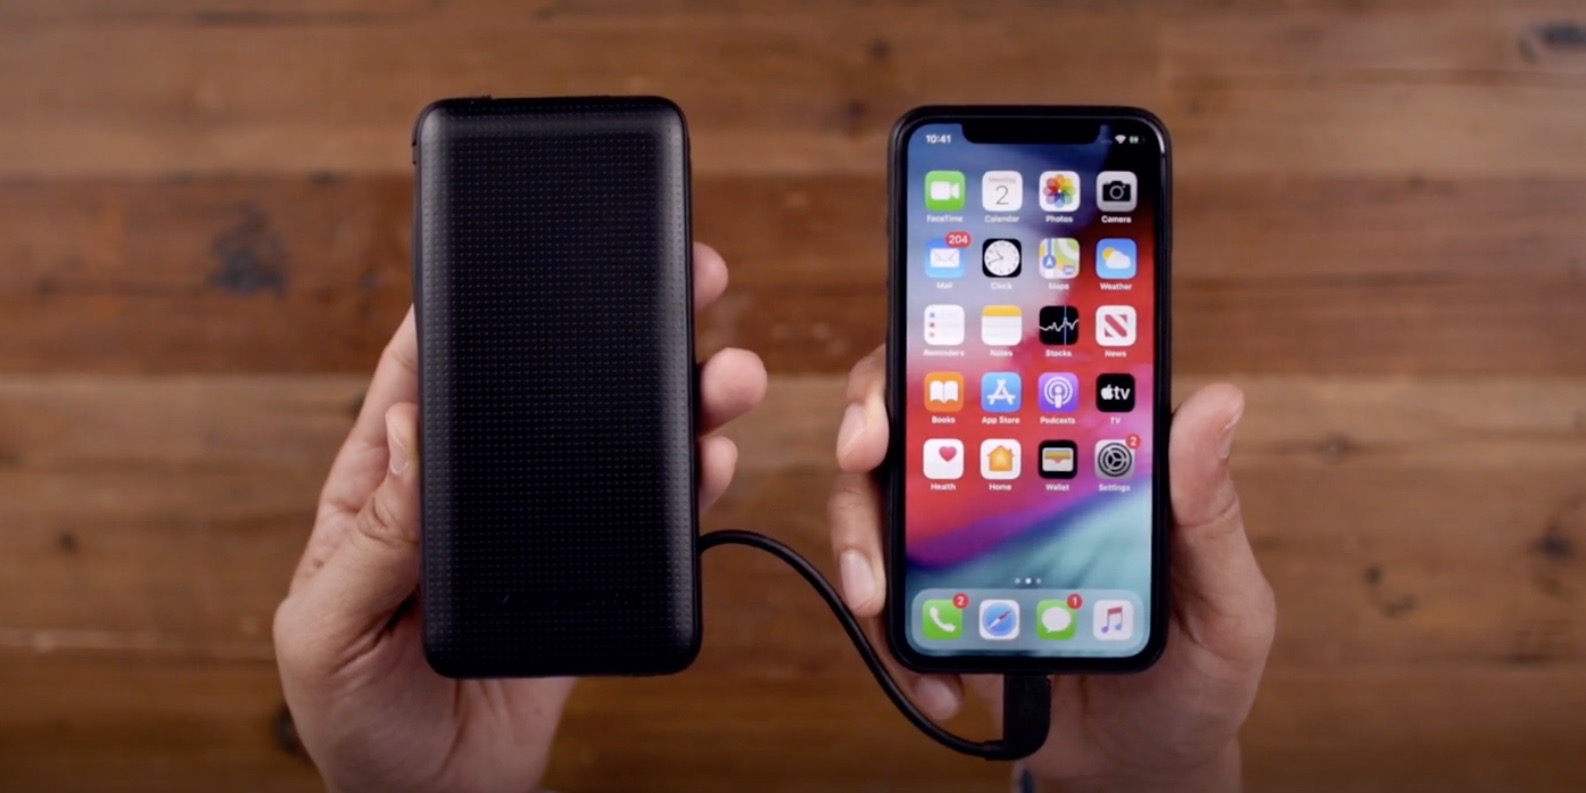 HyperJuice USB-C + Lightning Battery iPhone fast charging